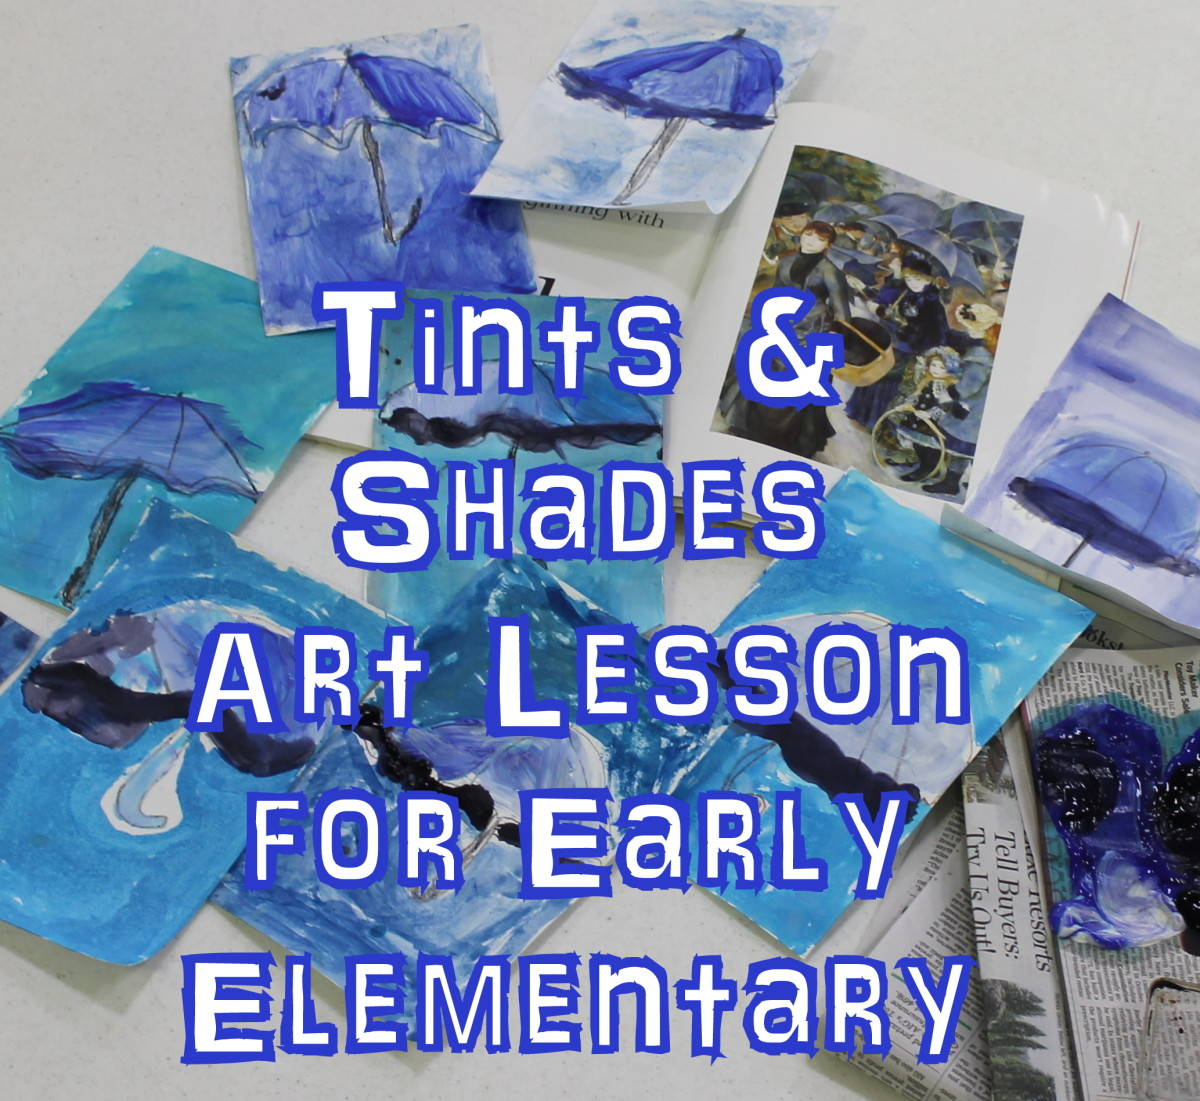 Tints & Shades Art Lesson for Early Elementary